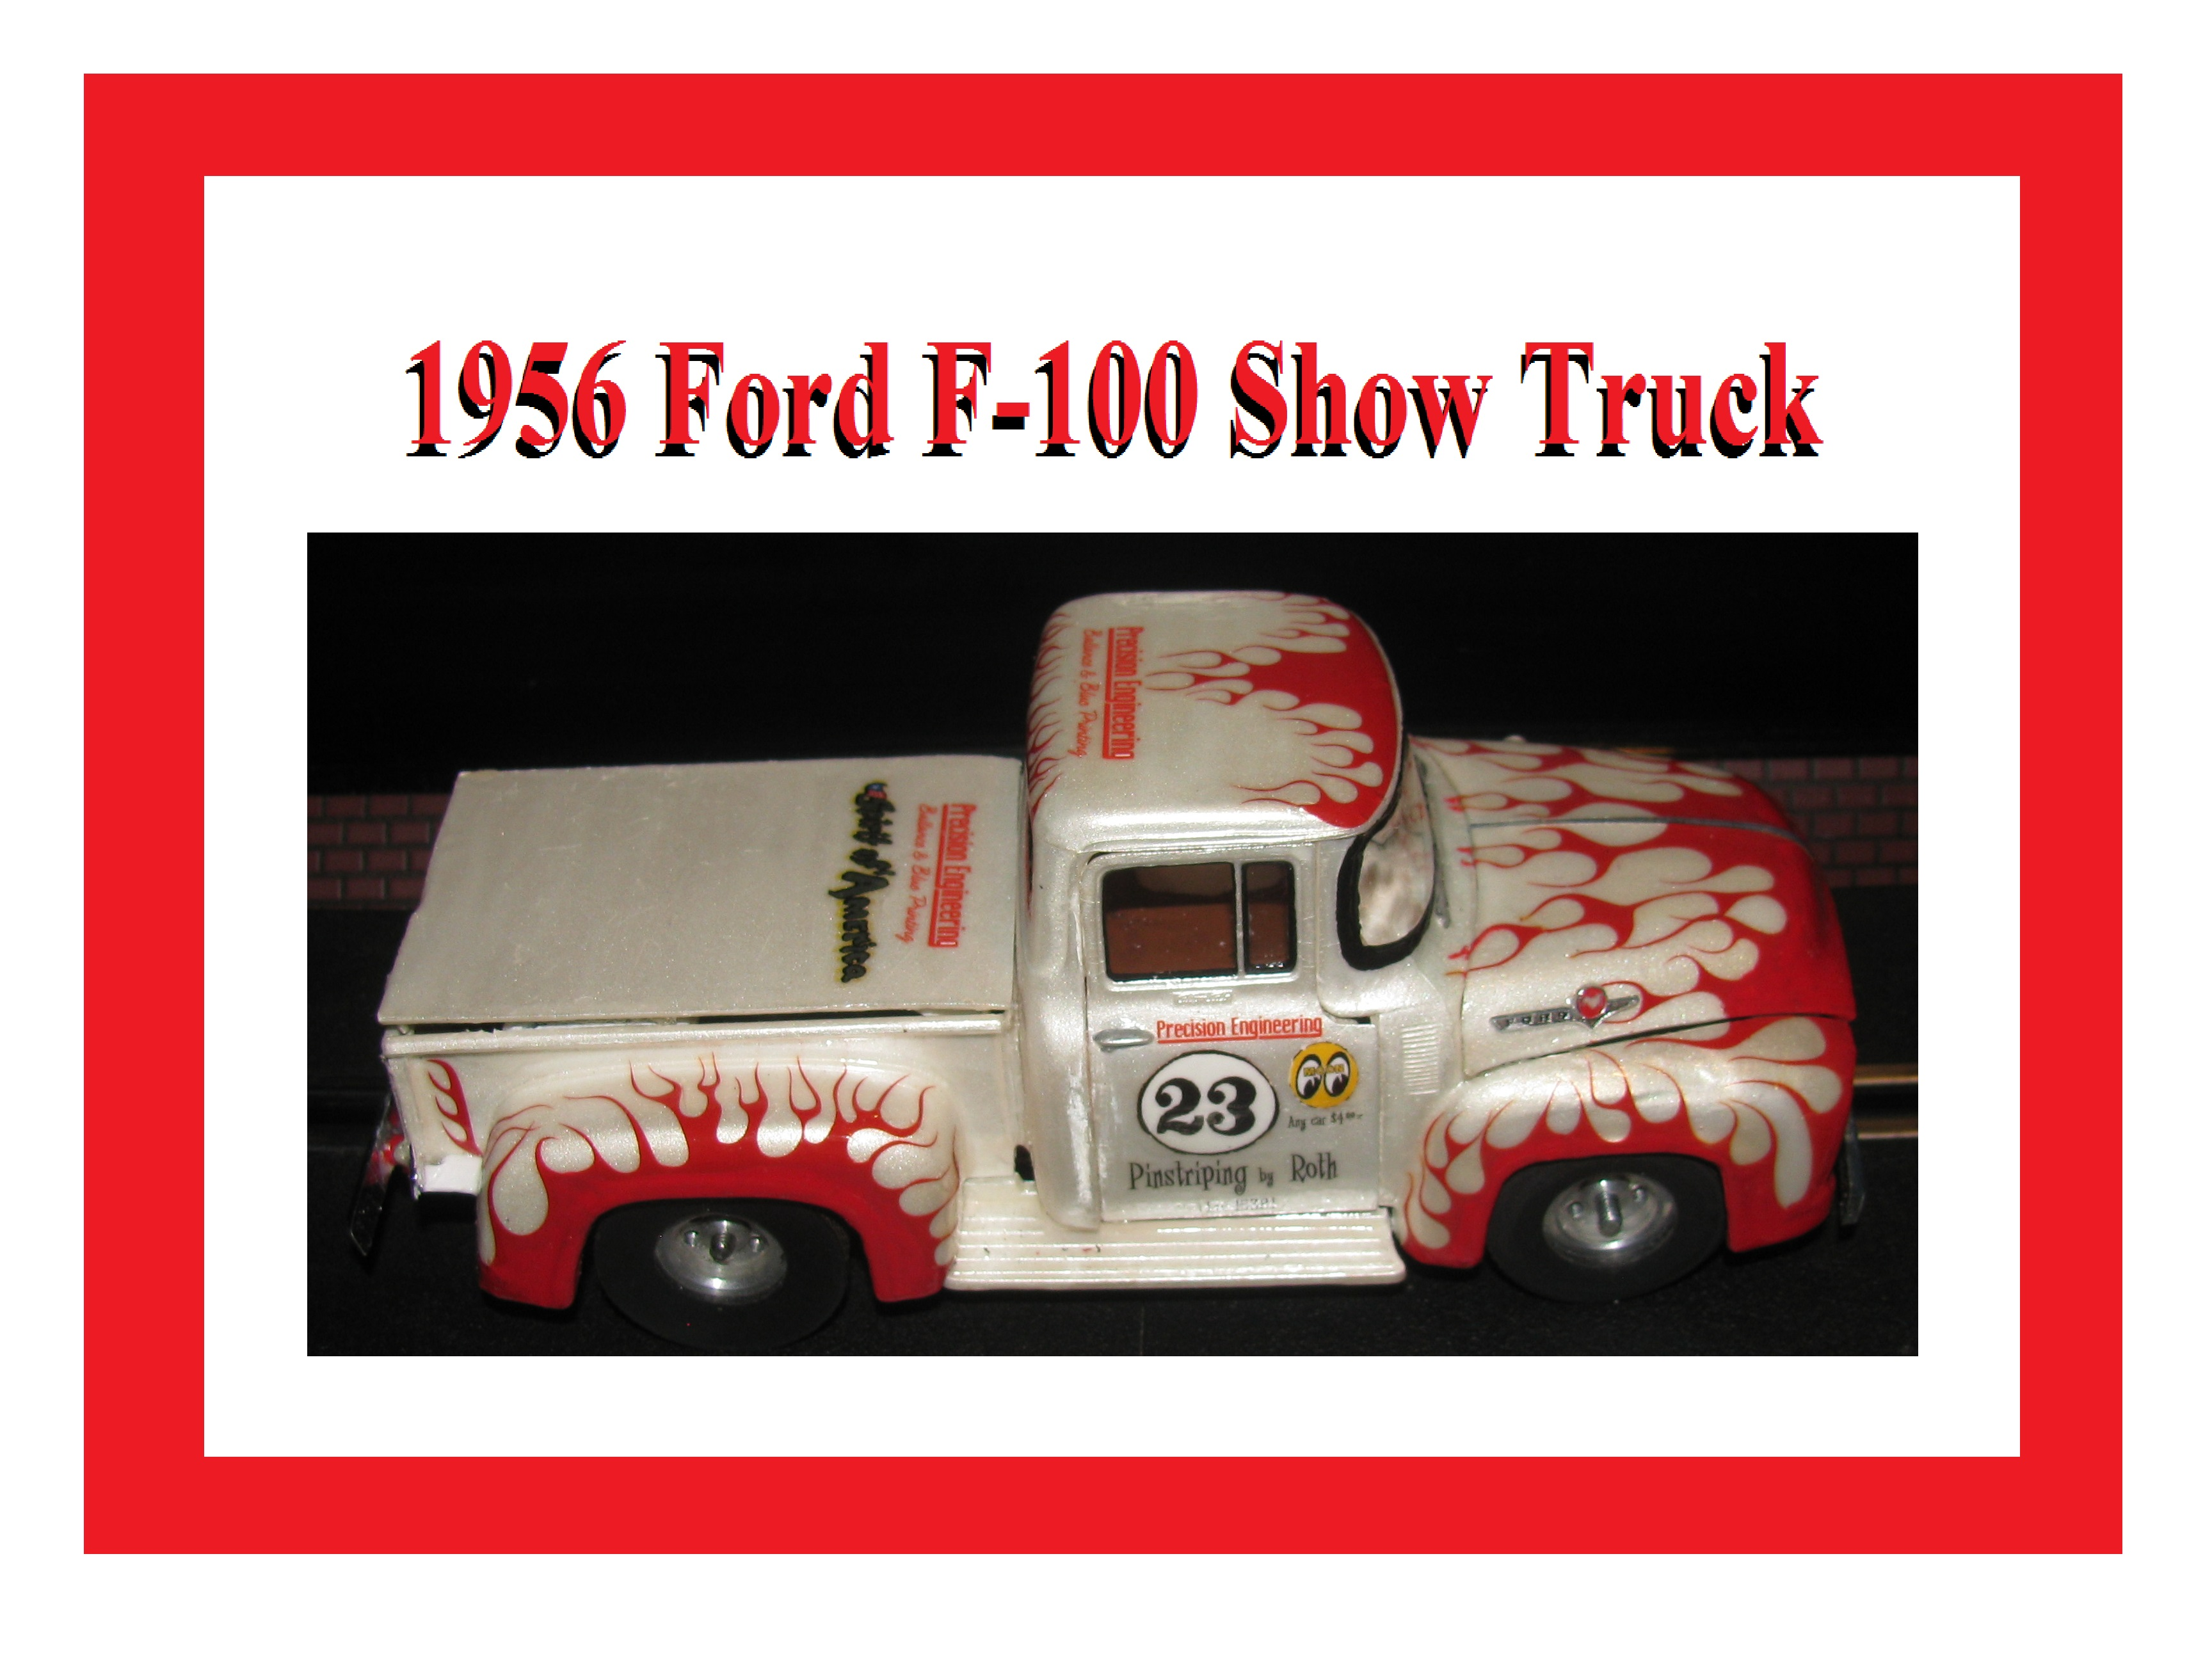 * Super Sale * Revell 1956 Ford F-100 Show Truck in Pearl White with Unique Livery - #23 – 1:24 Scale